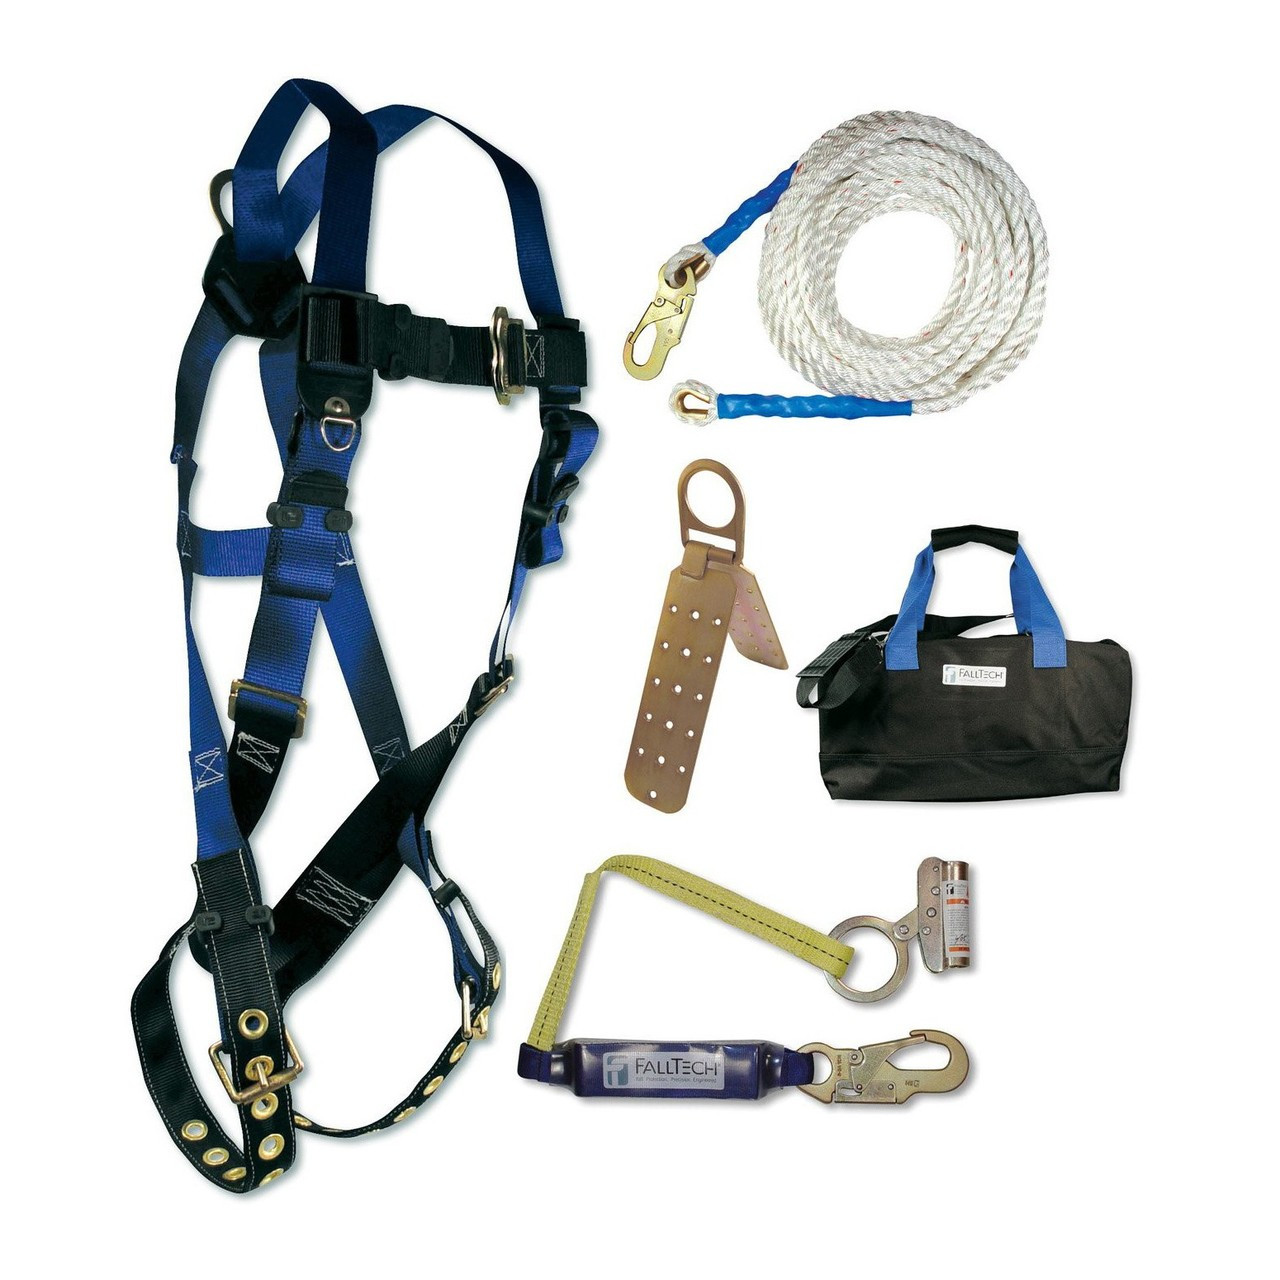 Falltech 8595ra Professional Roofers Kit With Storage Bag Roofing Harness Image 1